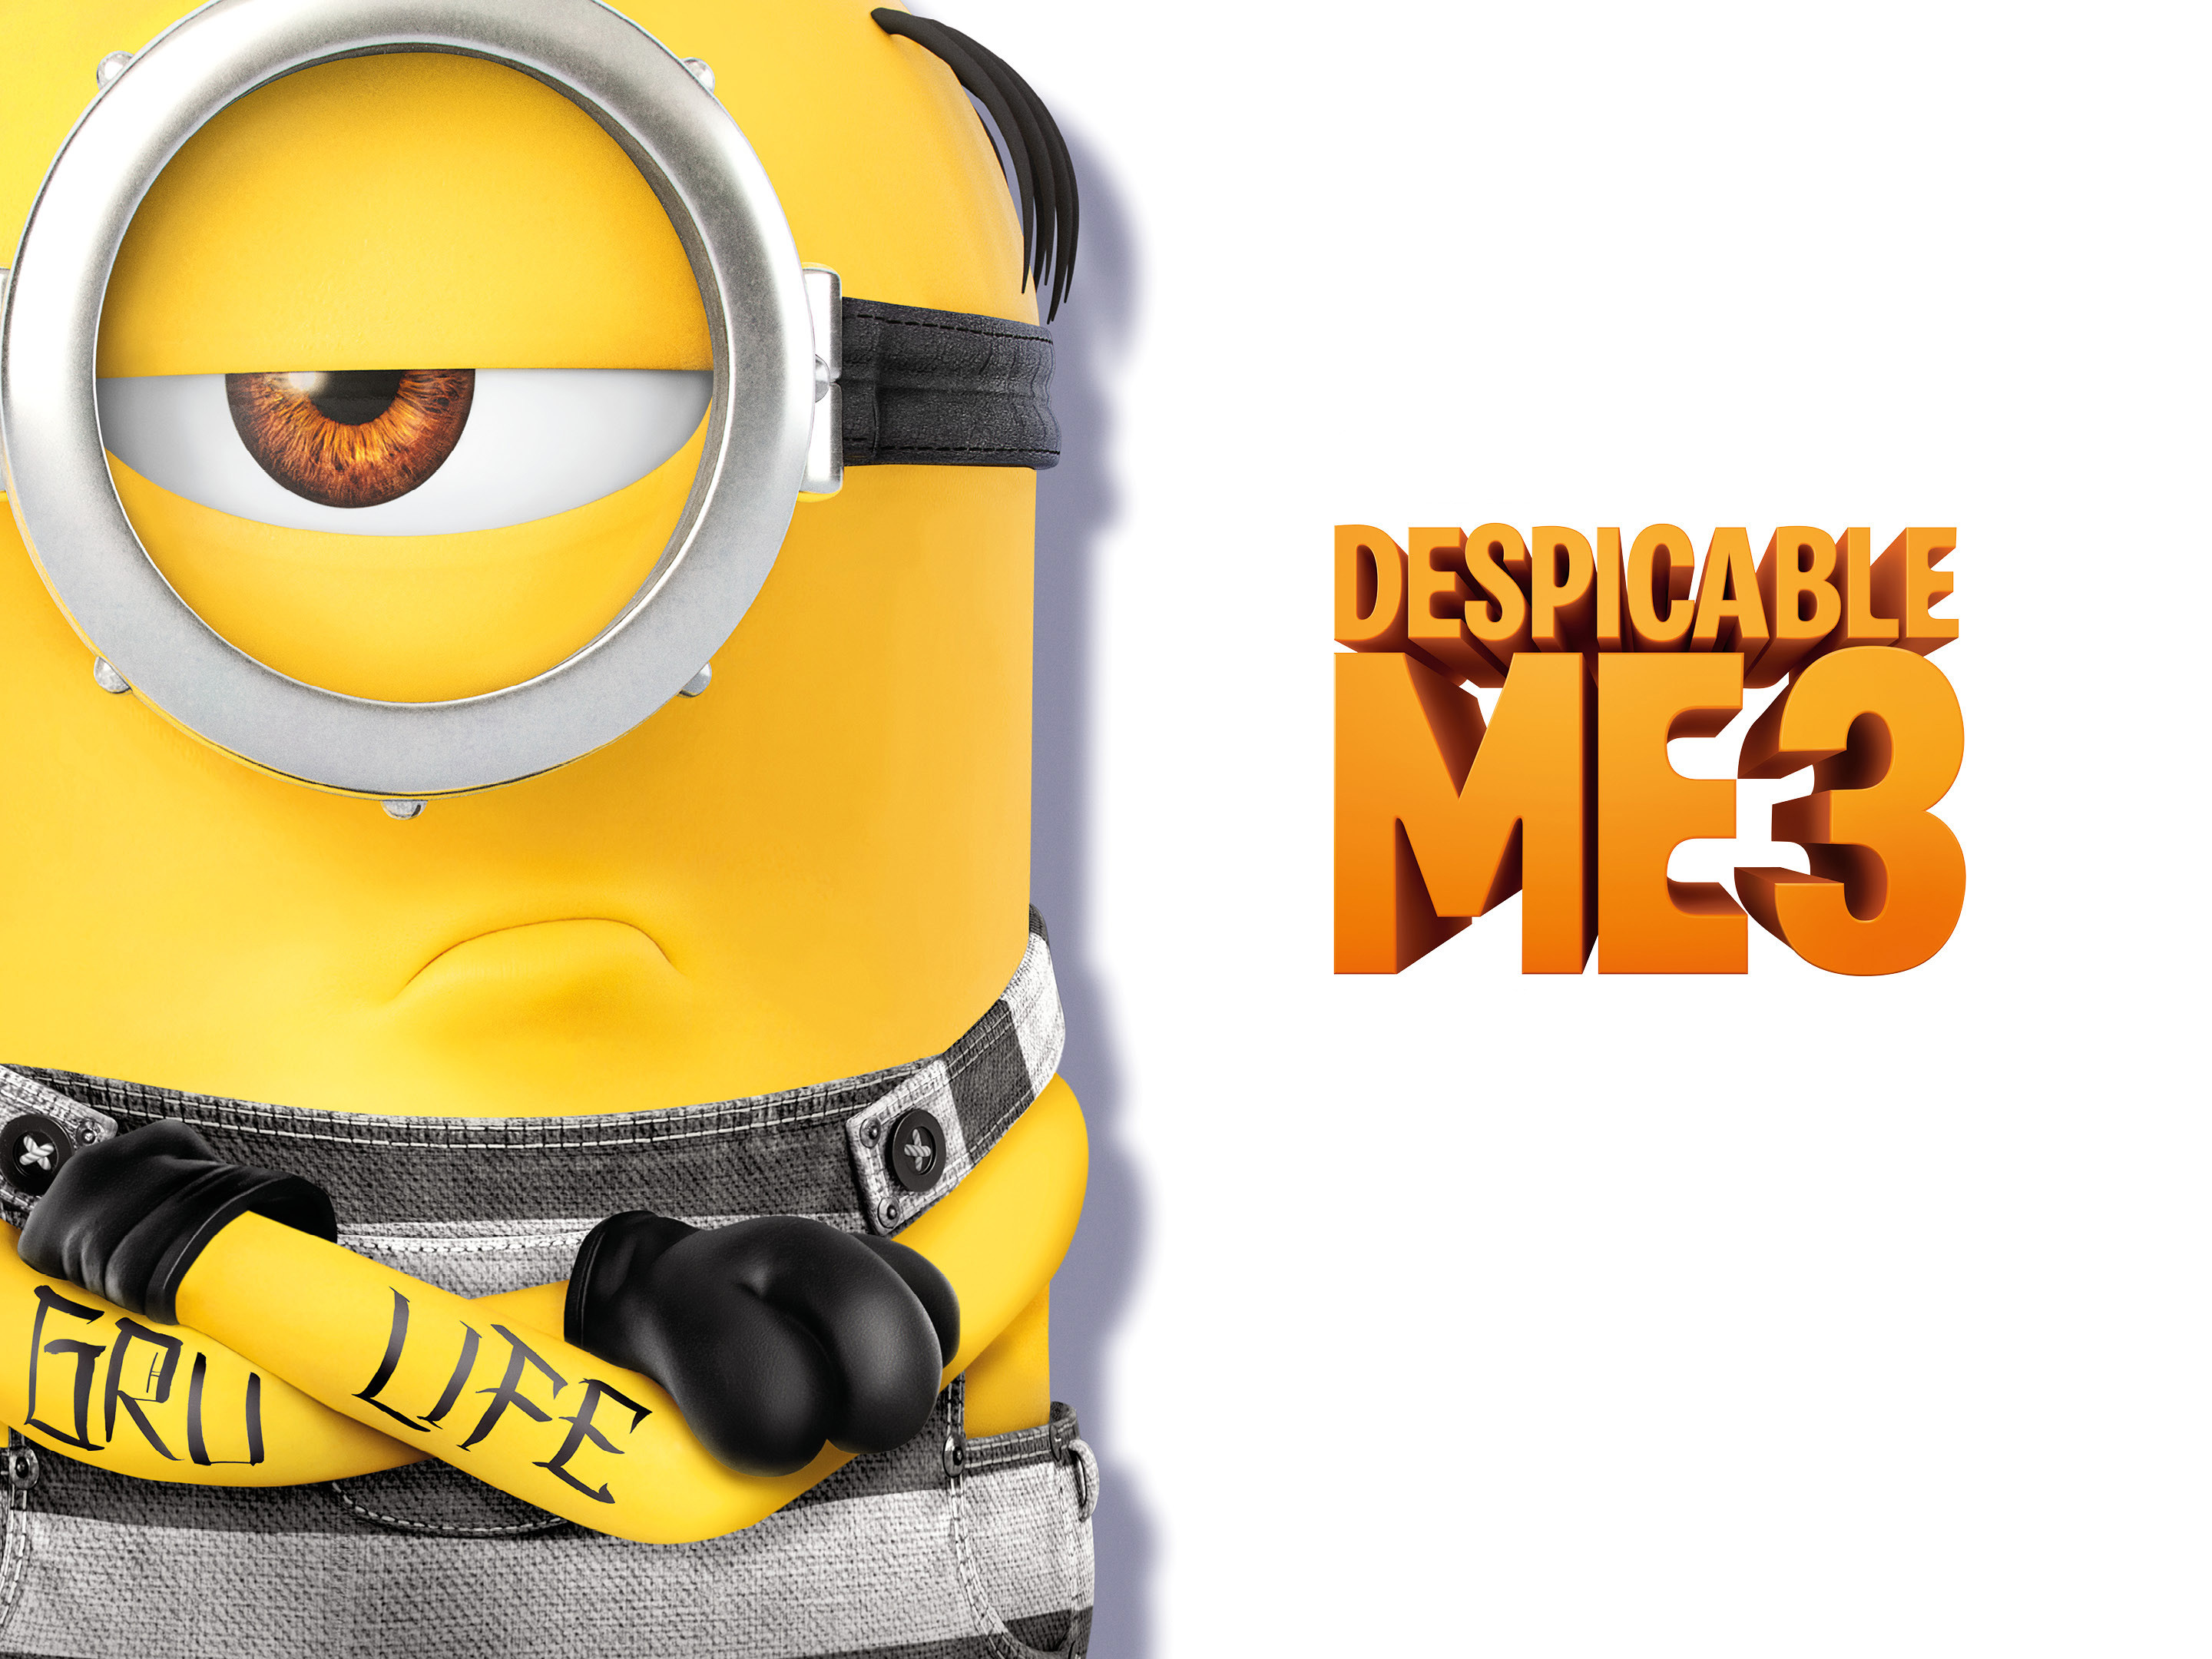 Wallpaper Despicable Me, Minion, Character - Despicable Me 3 , HD Wallpaper & Backgrounds